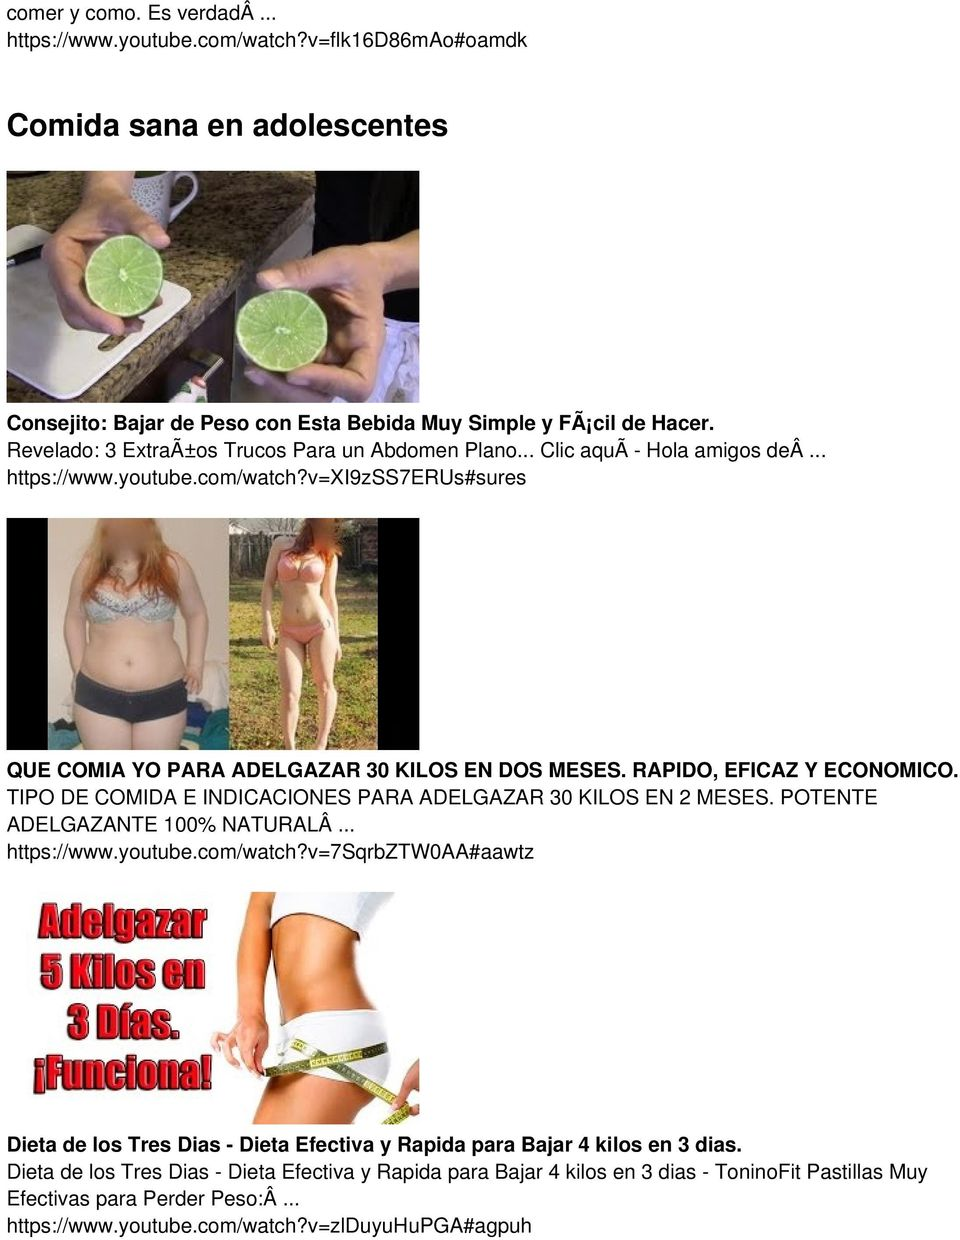 Adelgazar 8 Kilos En 2 Meses Additional Information Here Pdf